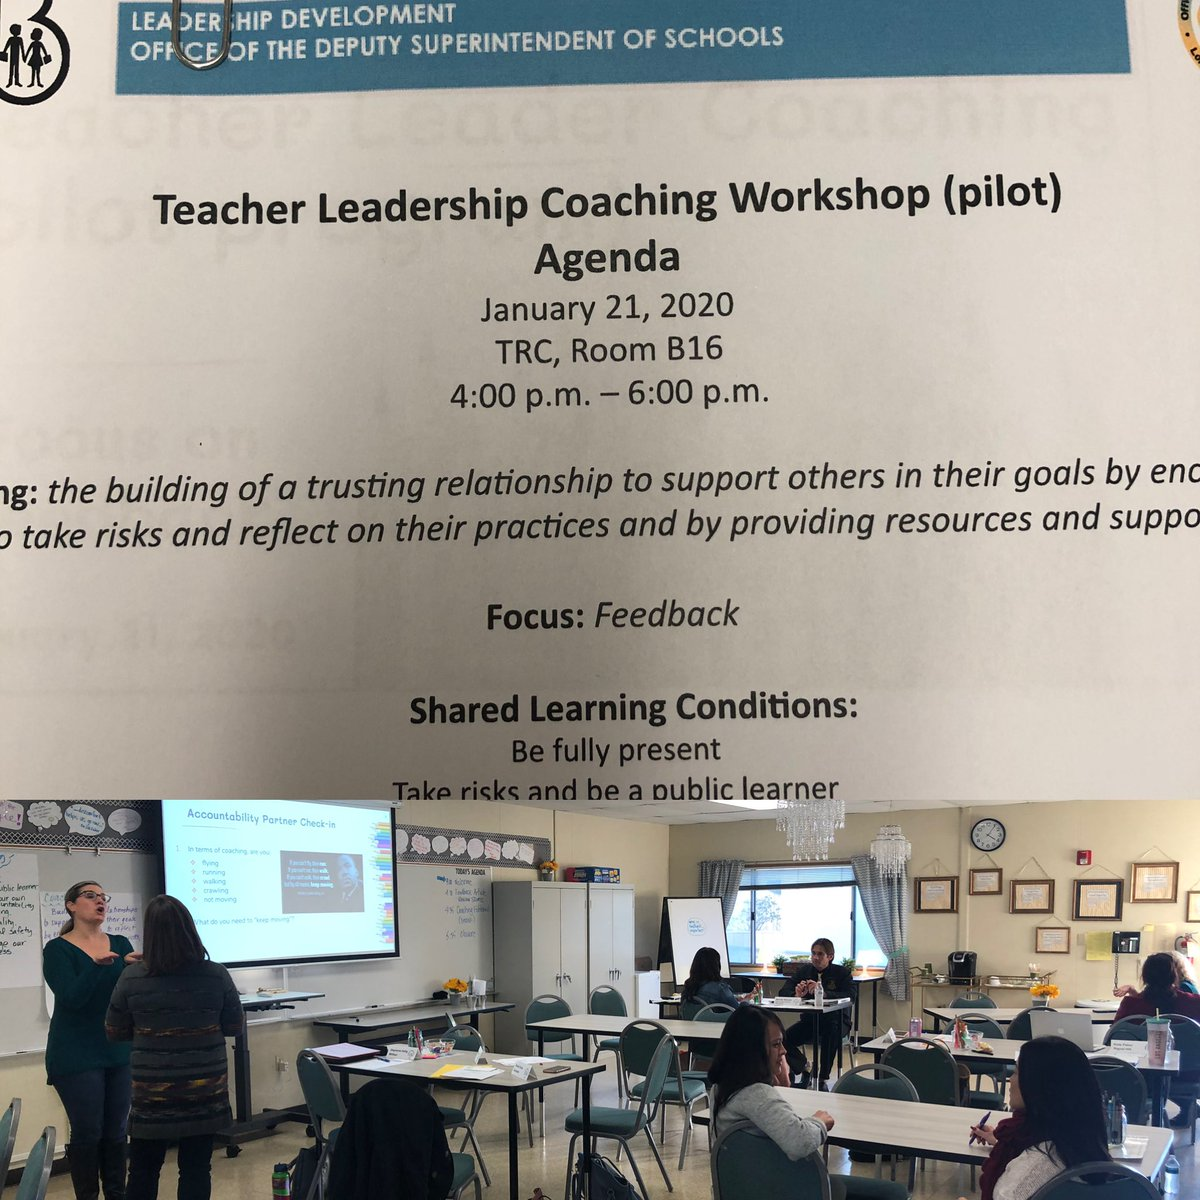 Ending the day with our Teacher Leader Coaching cohort! Tonight we're diving into feedback via our coaching fishbowl. #proudtobeLBUSD